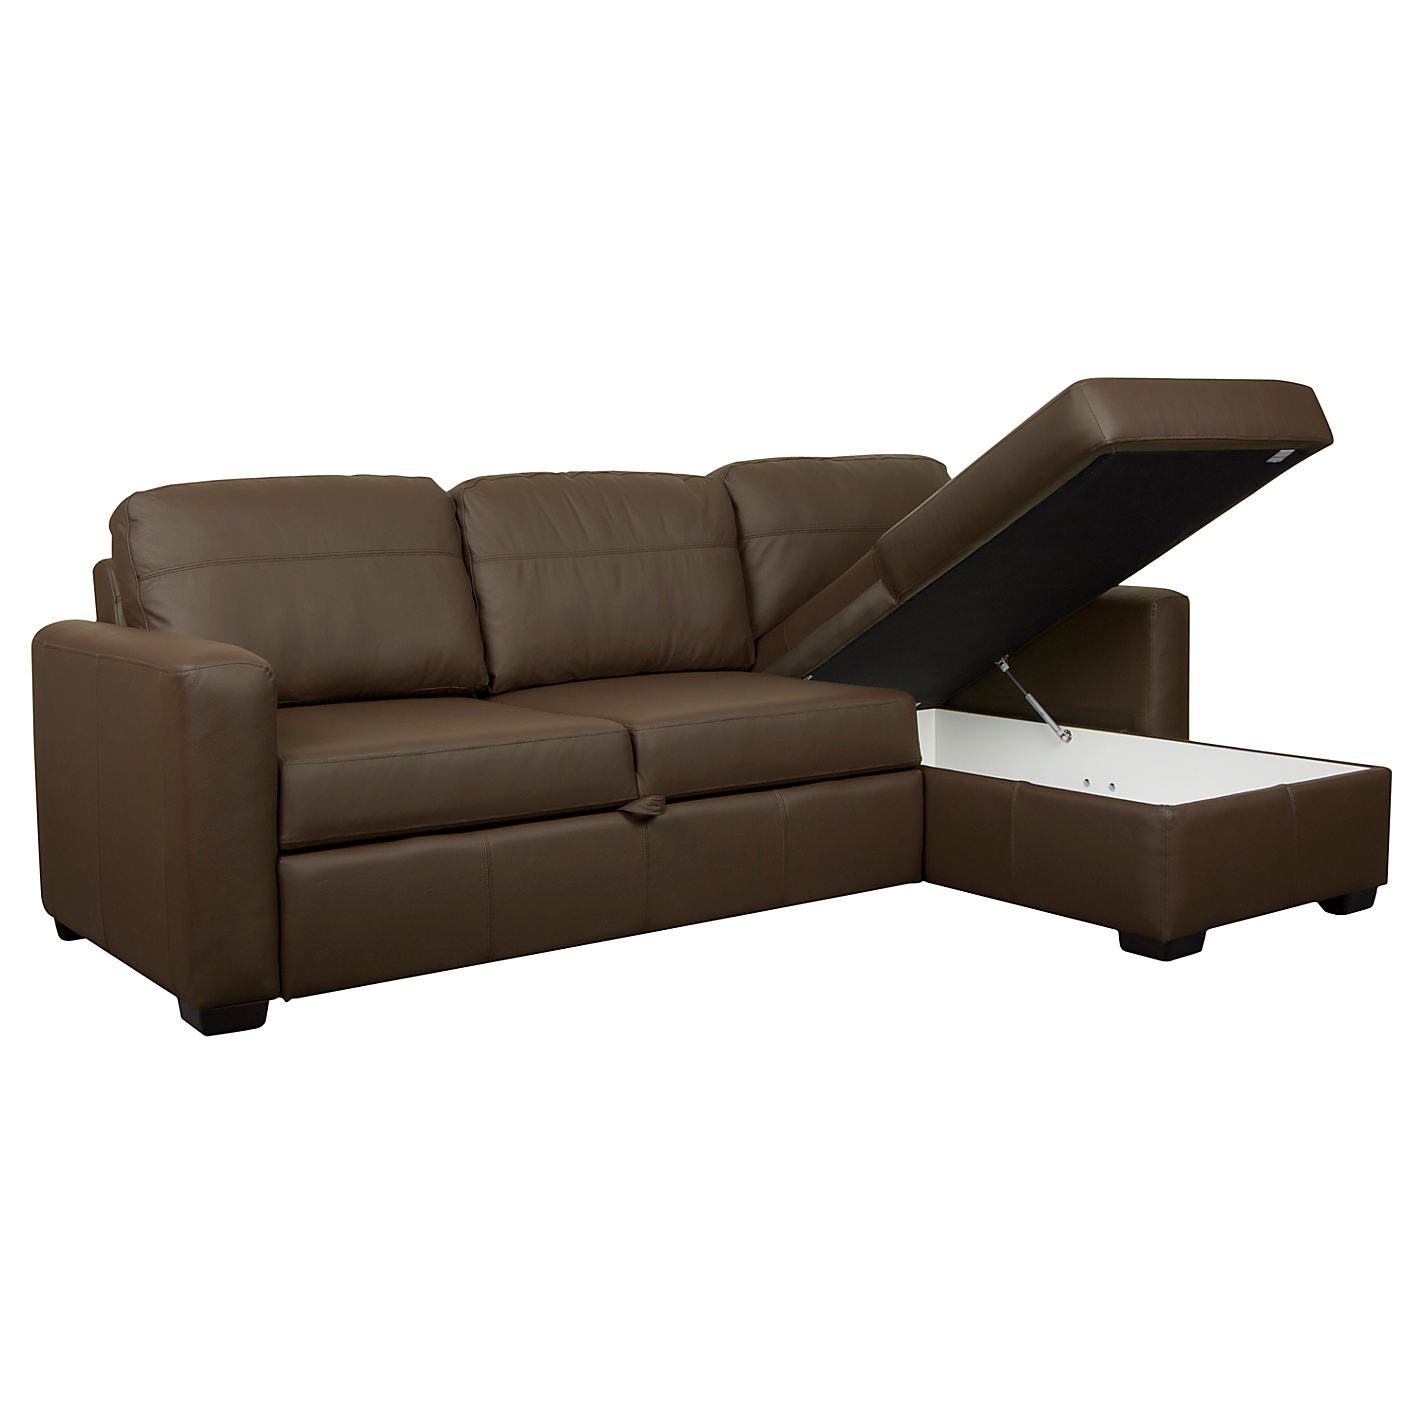 Buy John Lewis Sacha Leather Sofa Bed with Foam Mattress